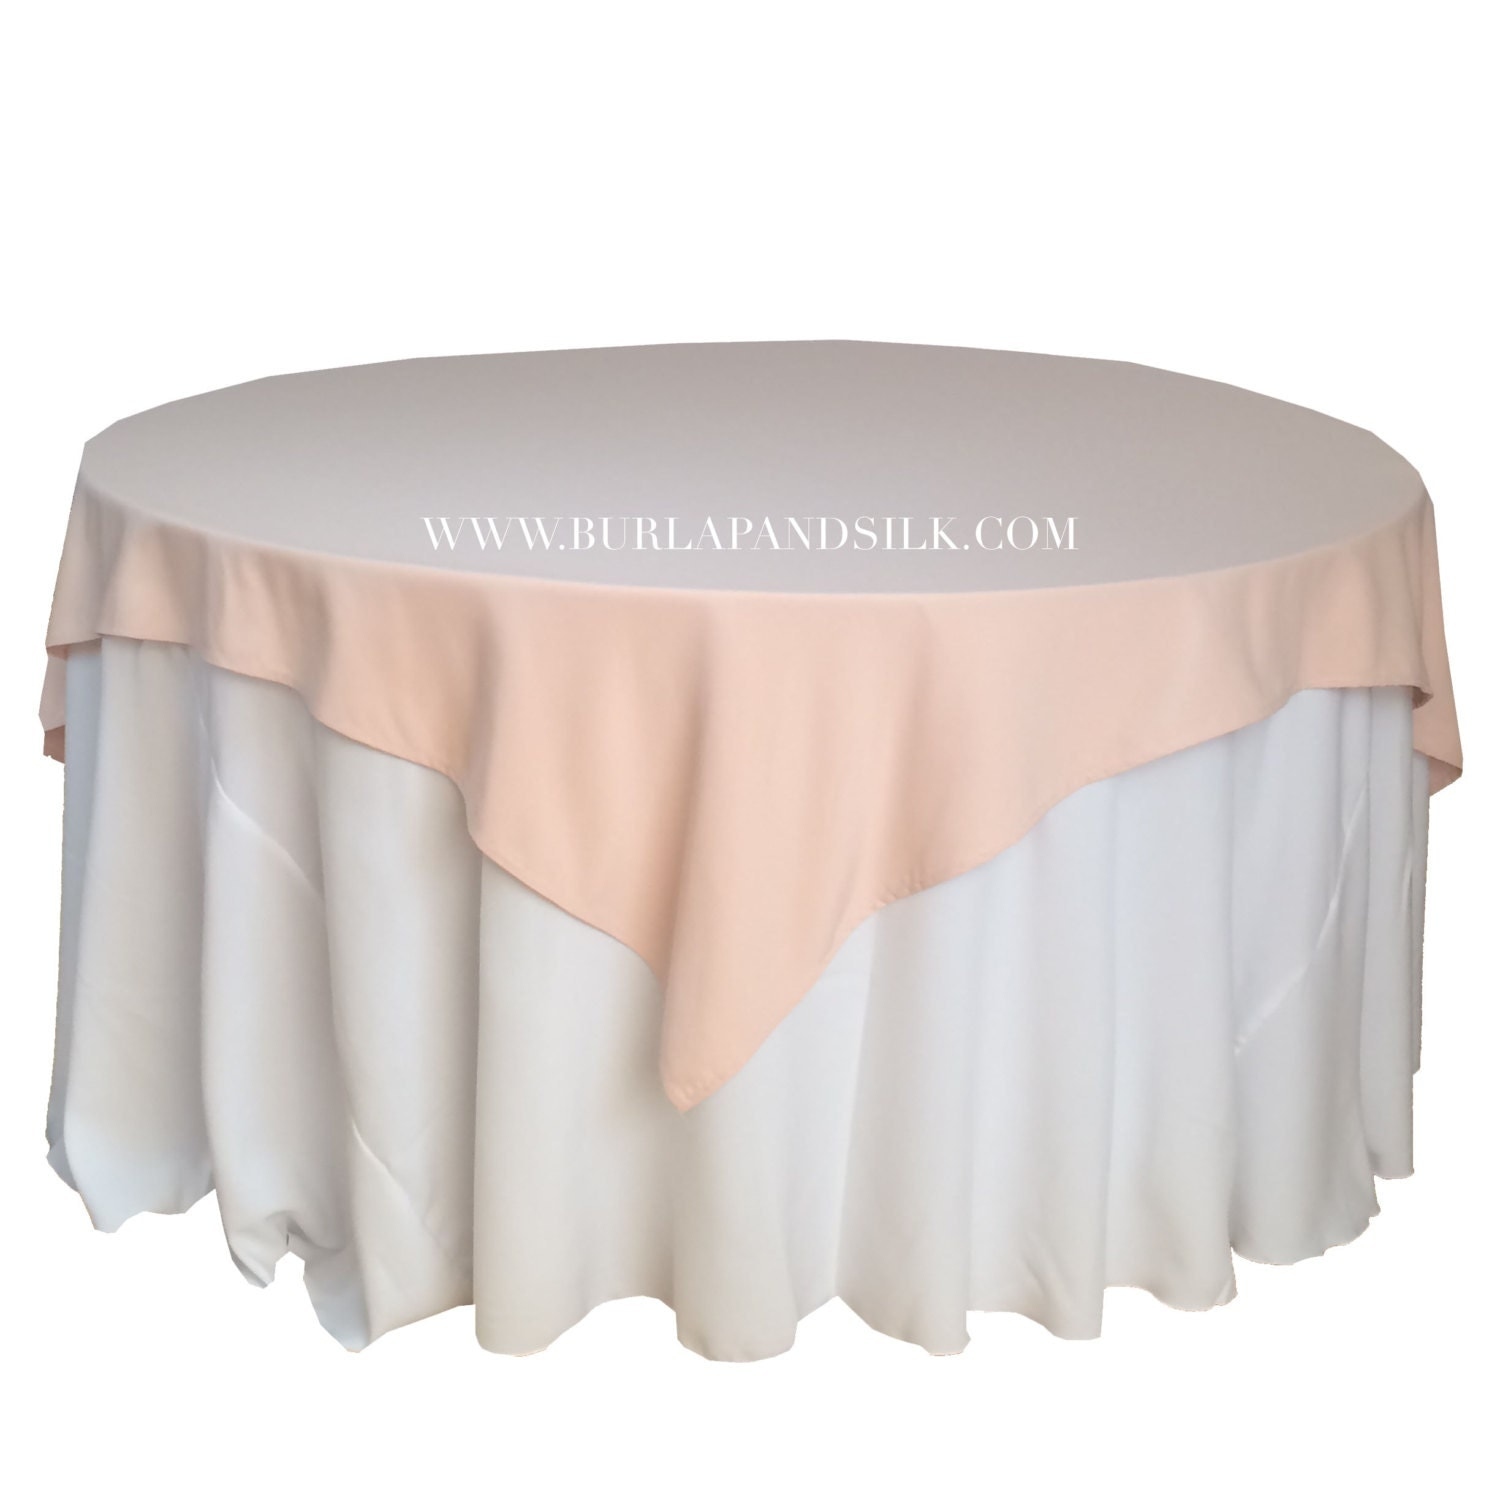 Blush table overlays 85 x 85 inches table overlays for 6 ft for 85 table overlay